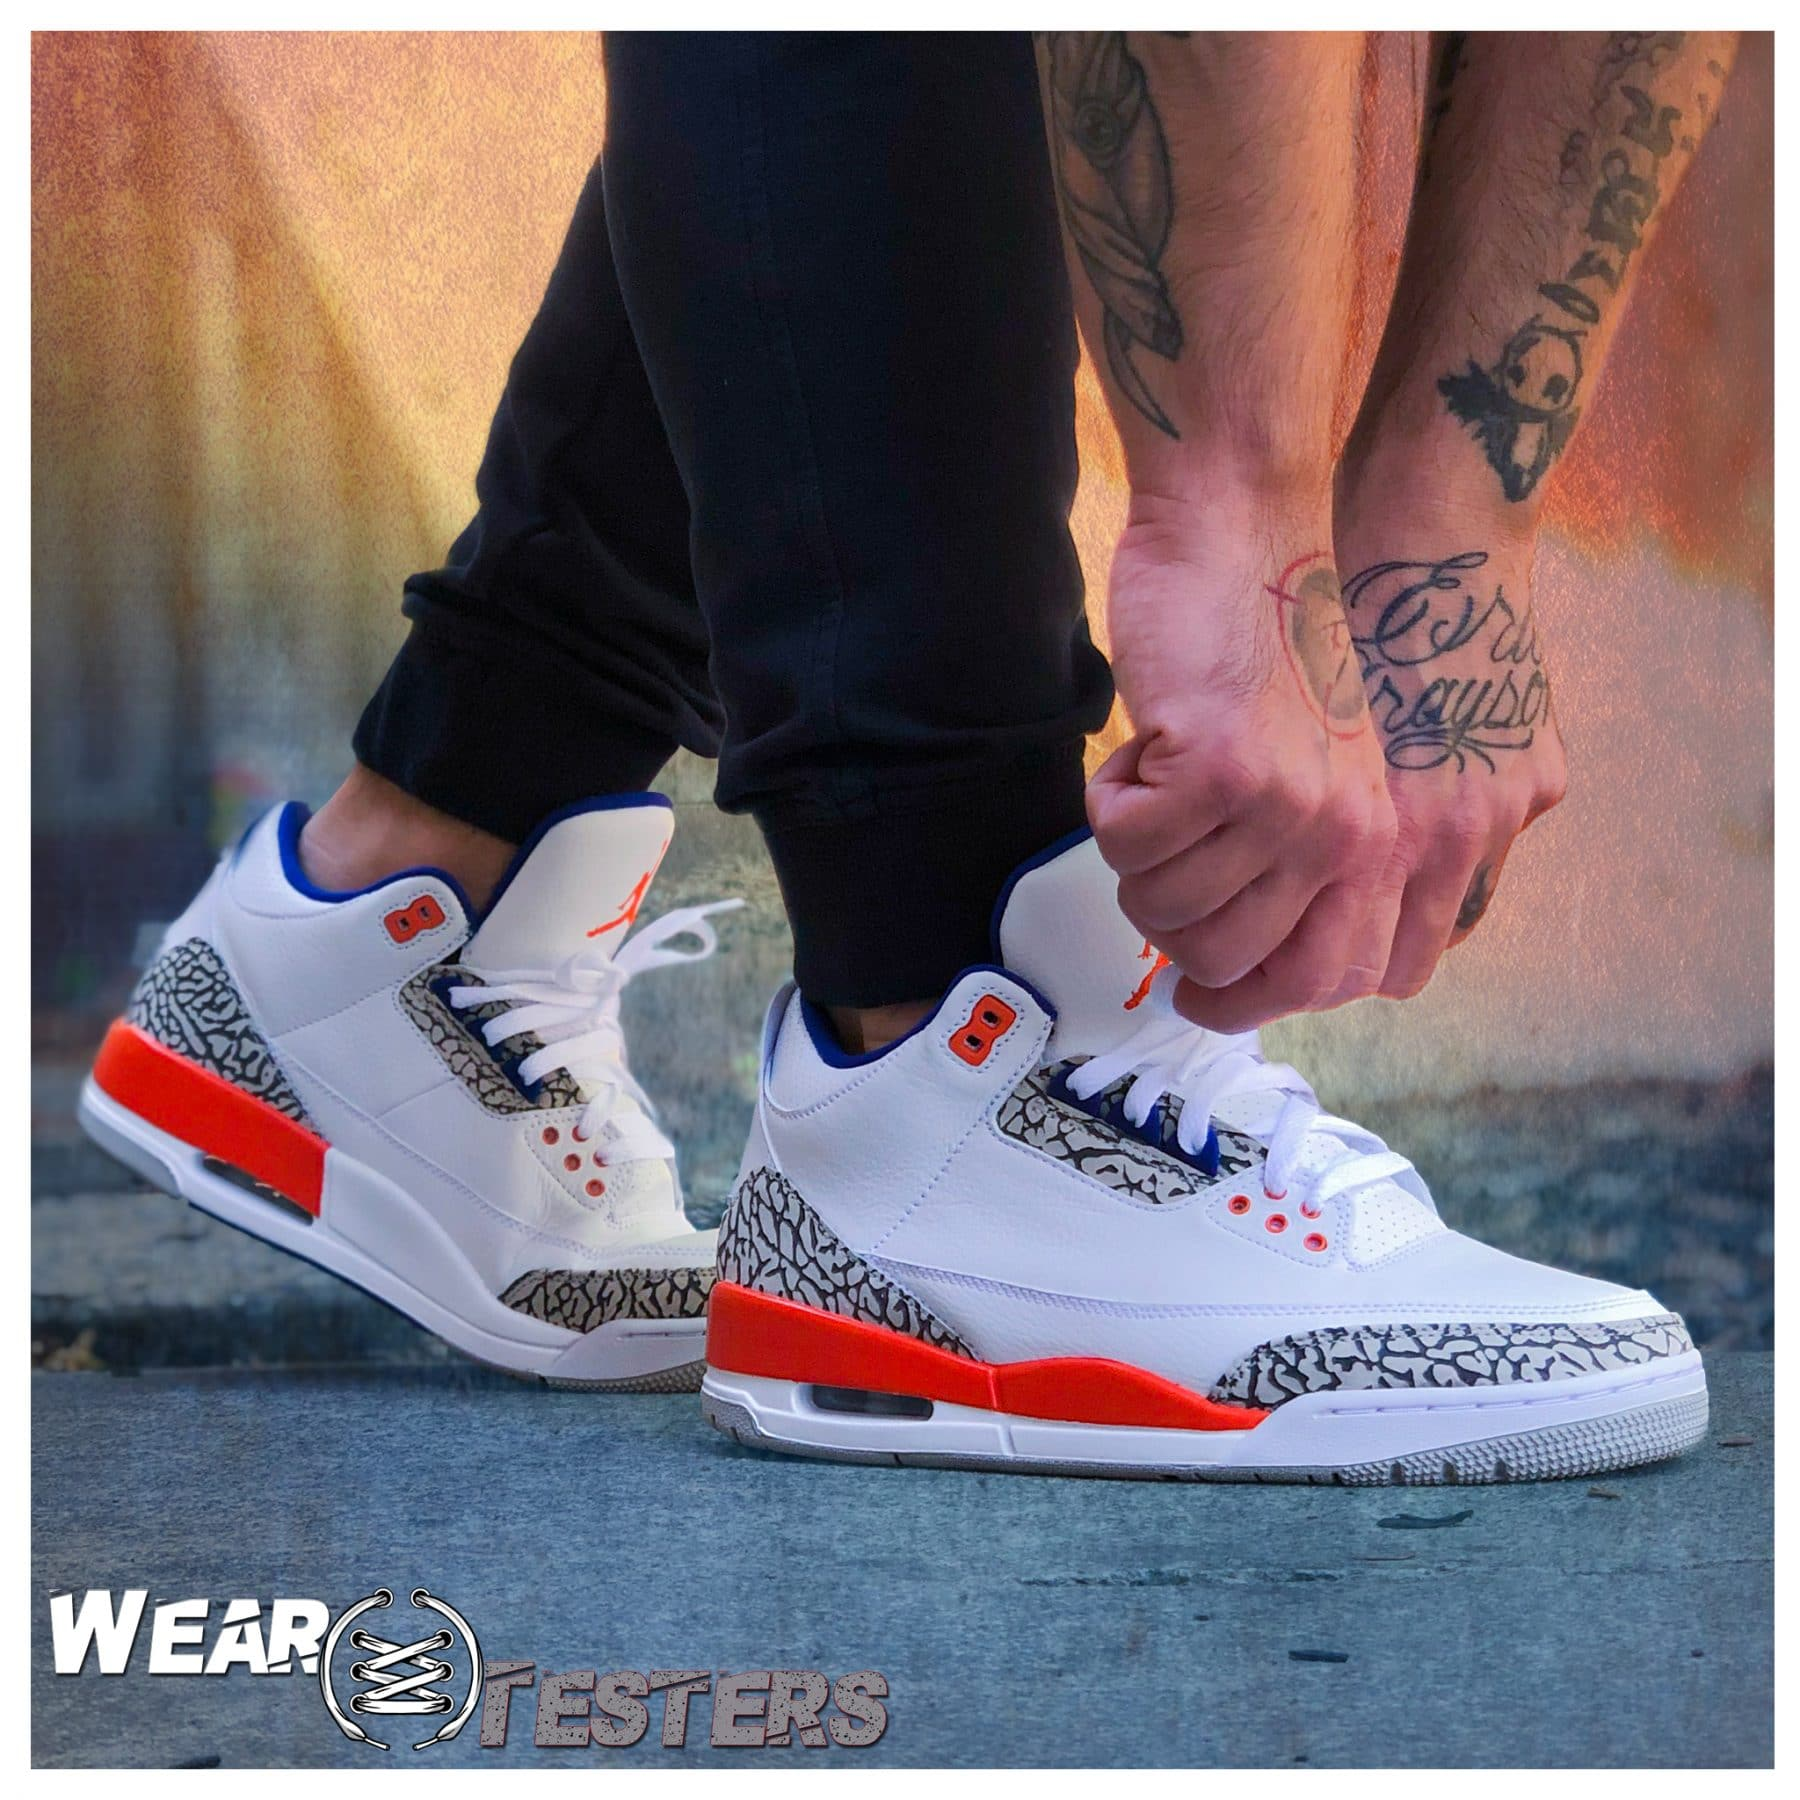 buy online a7796 11784 Air Jordan 3 'Knicks' | Detailed Look and Review - WearTesters